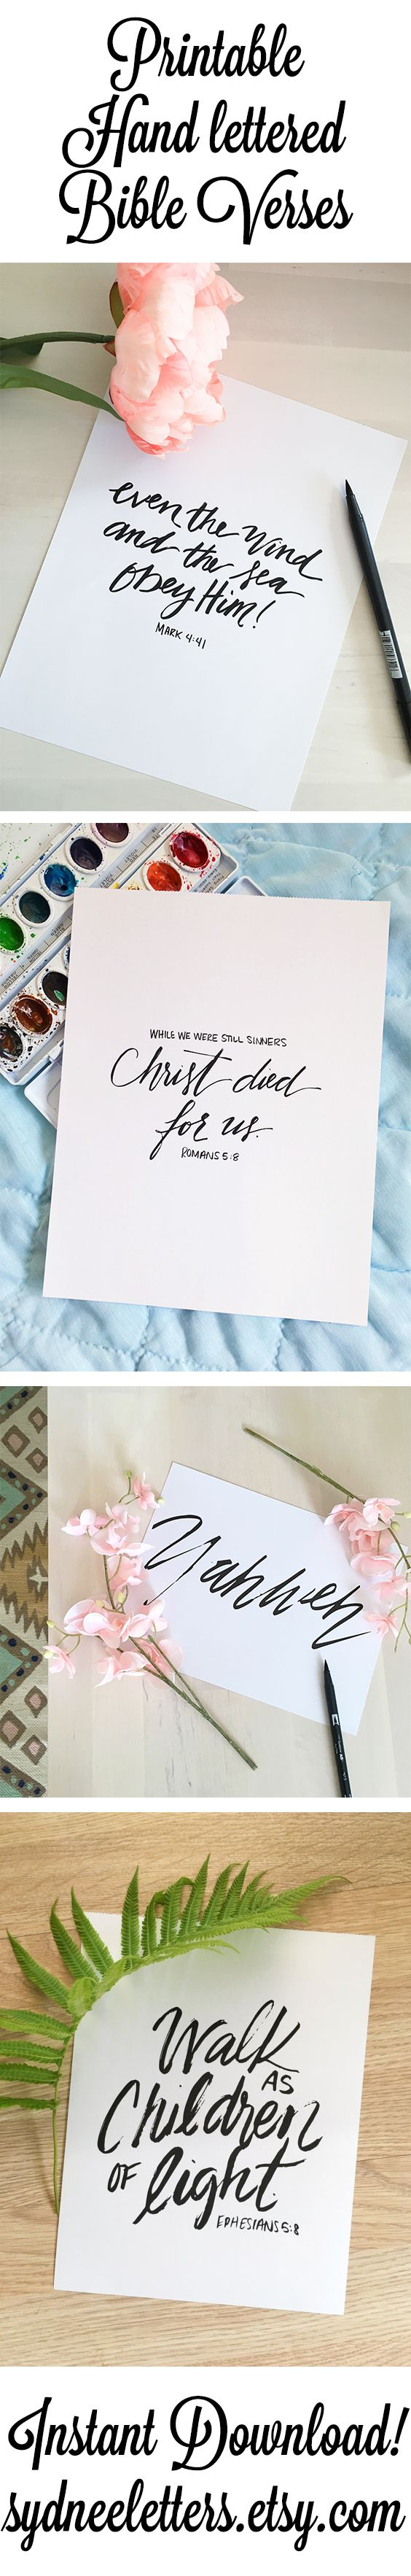 Need modern encouraging art for your home or office? Instantly download Hand lettered Bible prints now for just $5! Check out sydneeletters.etsy.com